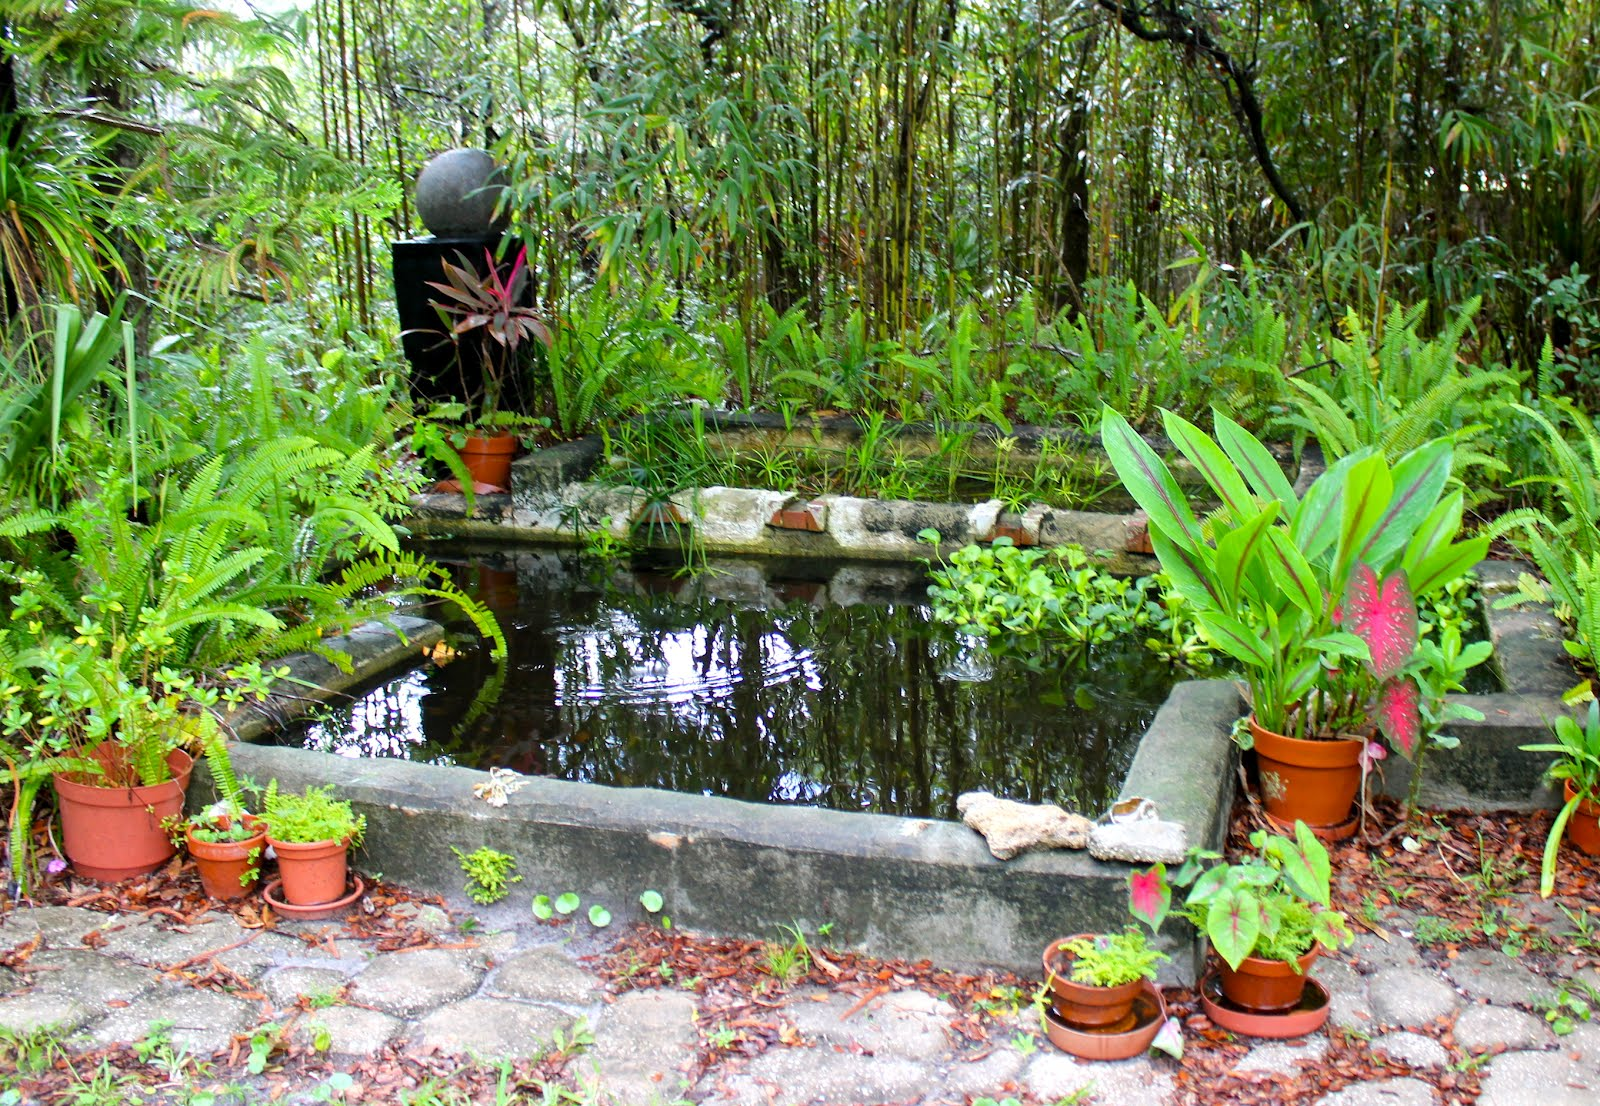 Tropical rains return to florida phillip 39 s natural world for Natural koi pond